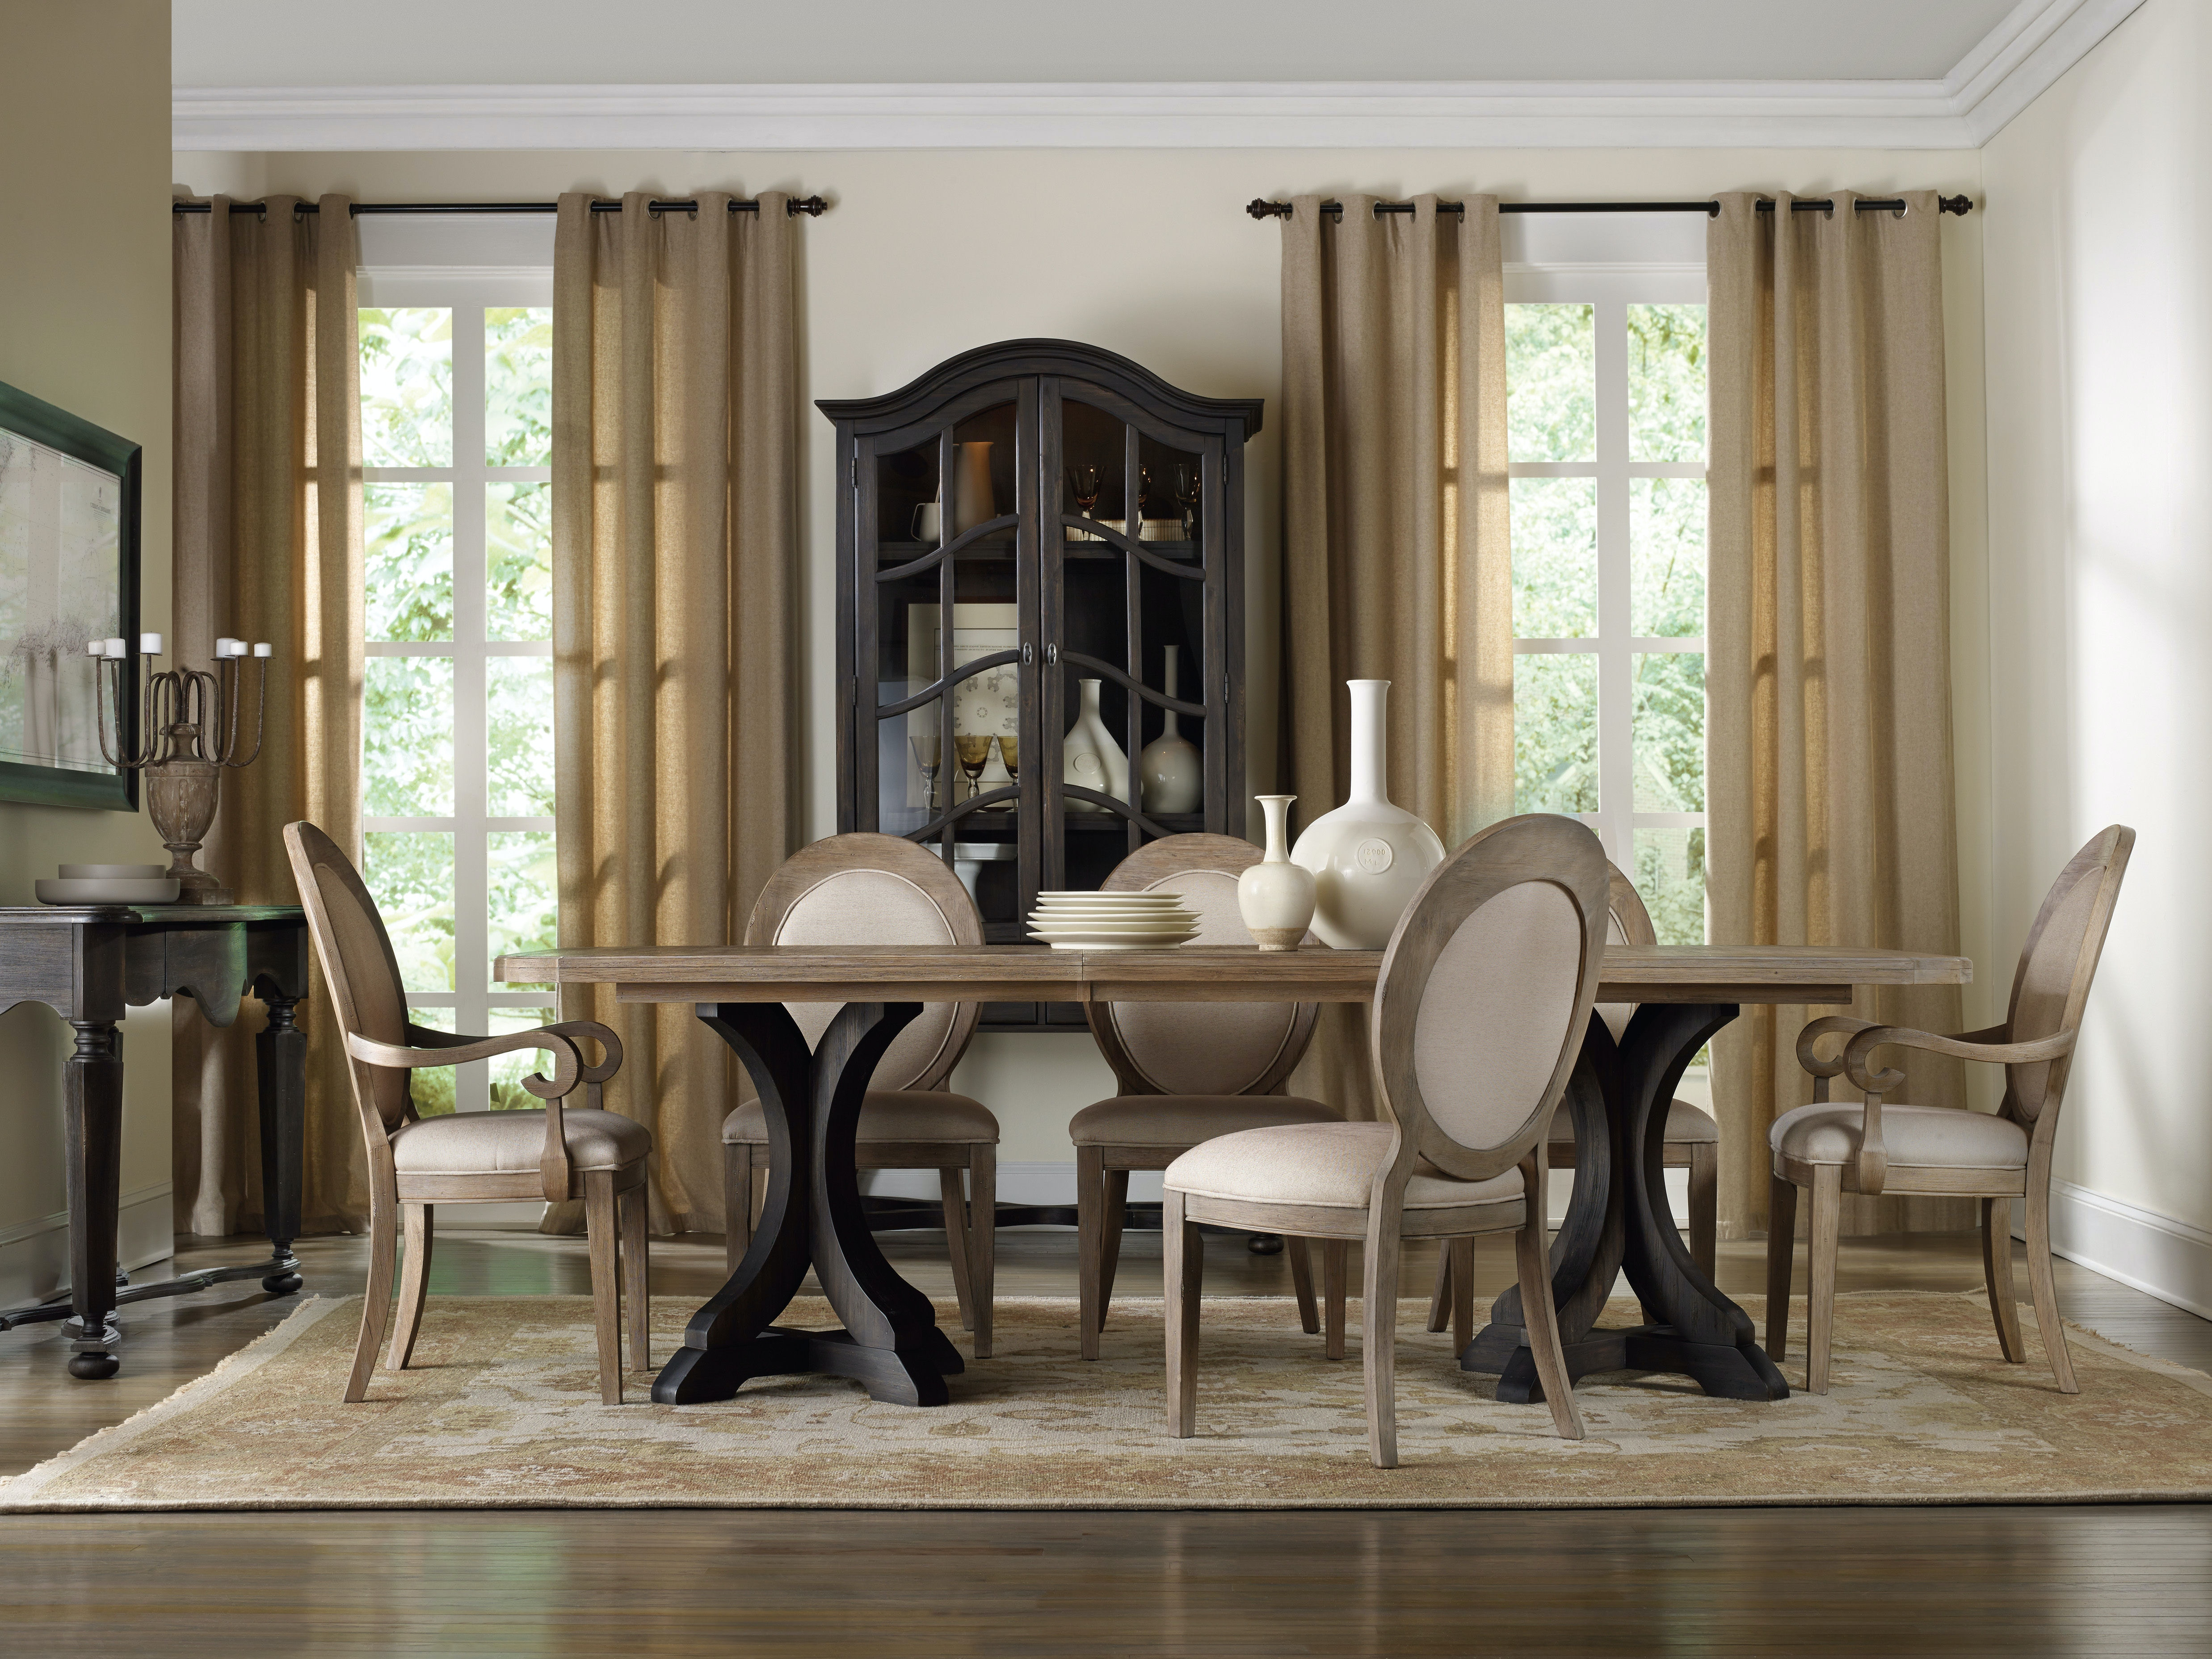 Hooker Furniture Corsica Dark Rectangle Pedestal Dining Table (Dark Base/Light Top) 5280 & Hooker Furniture Dining Room Corsica Dark Rectangle Pedestal Dining ...